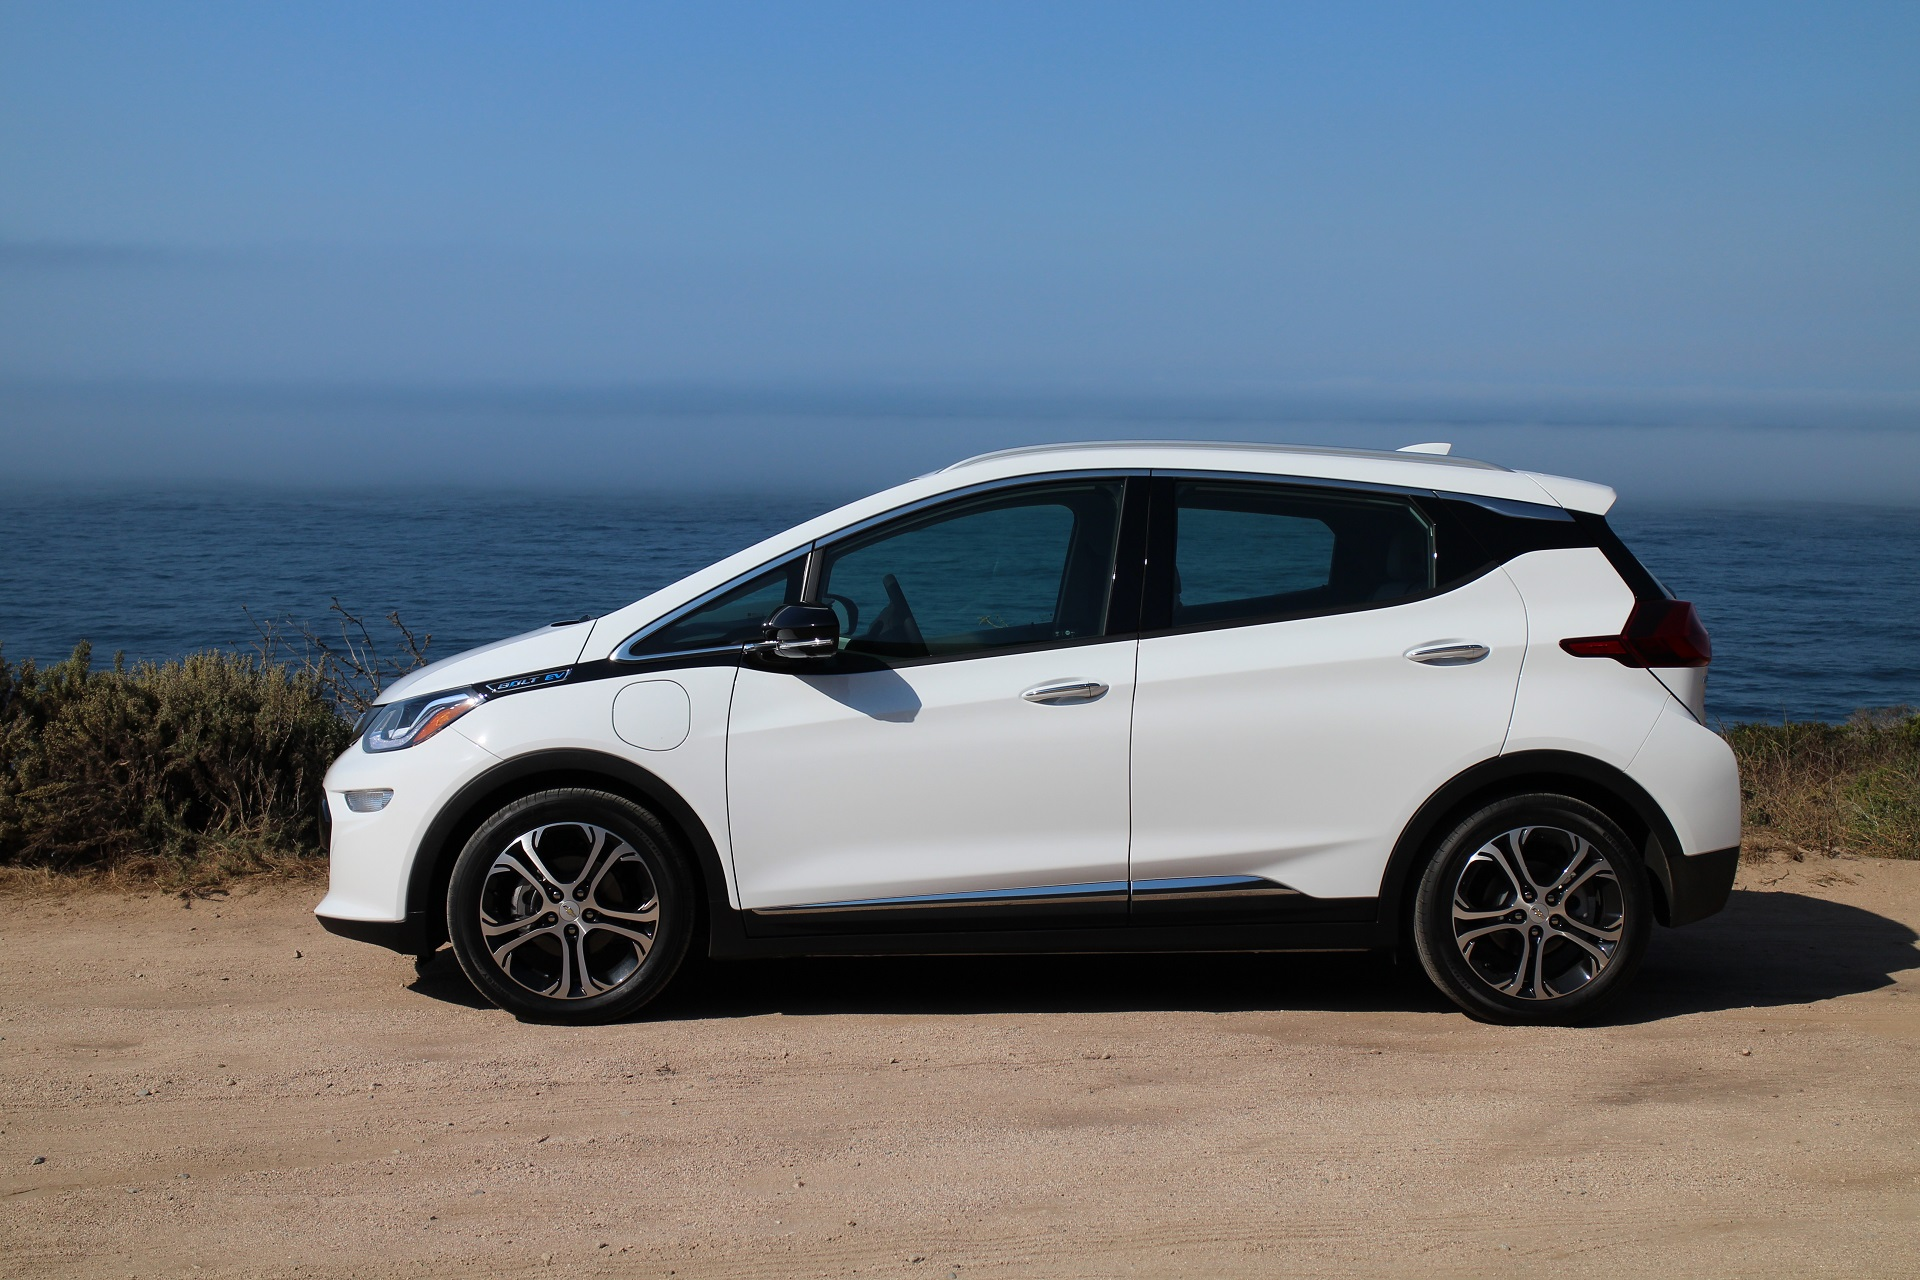 chevy bolt ev electric car shows gm can do silicon valley  exec says